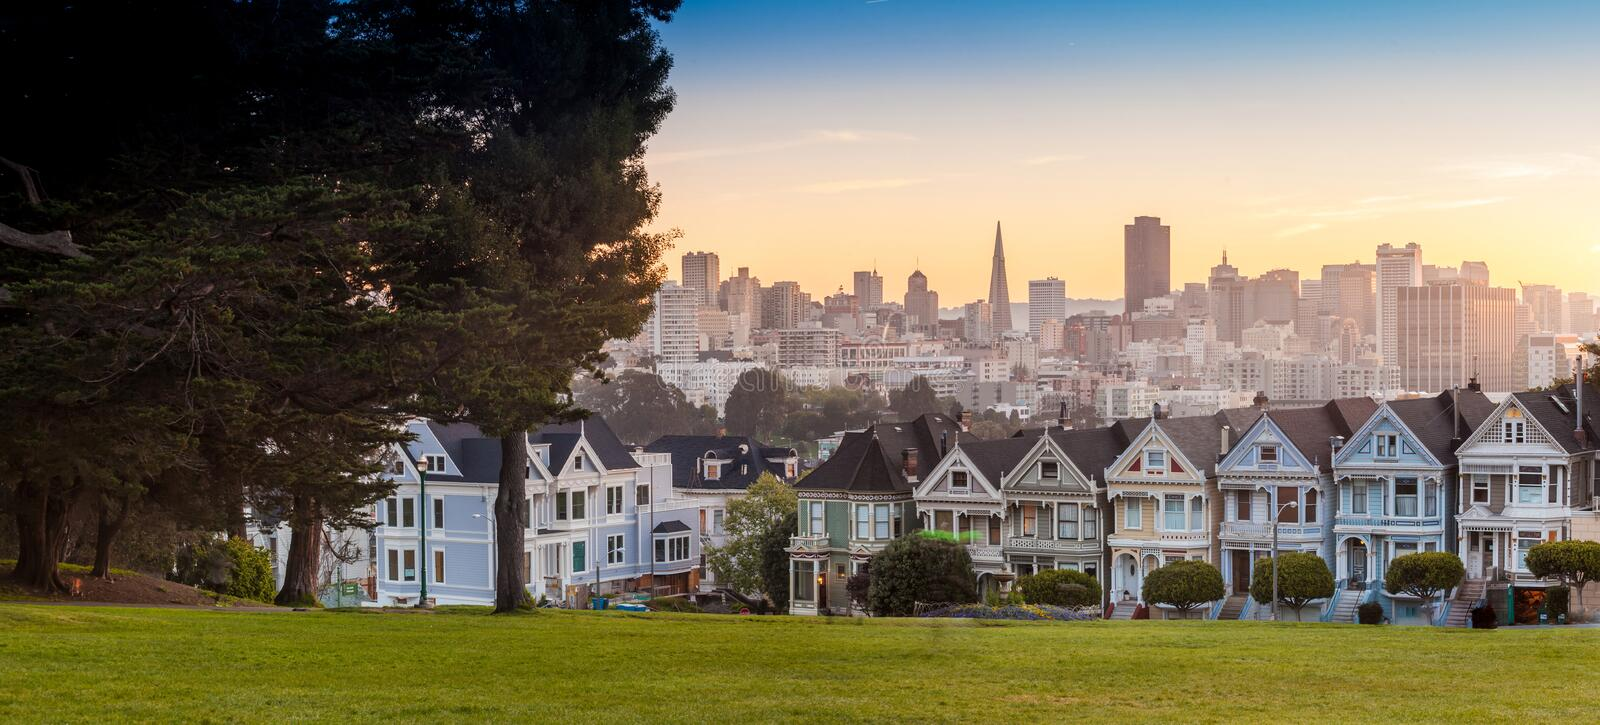 The Painted Ladies of San Francisco, USA. royalty free stock images